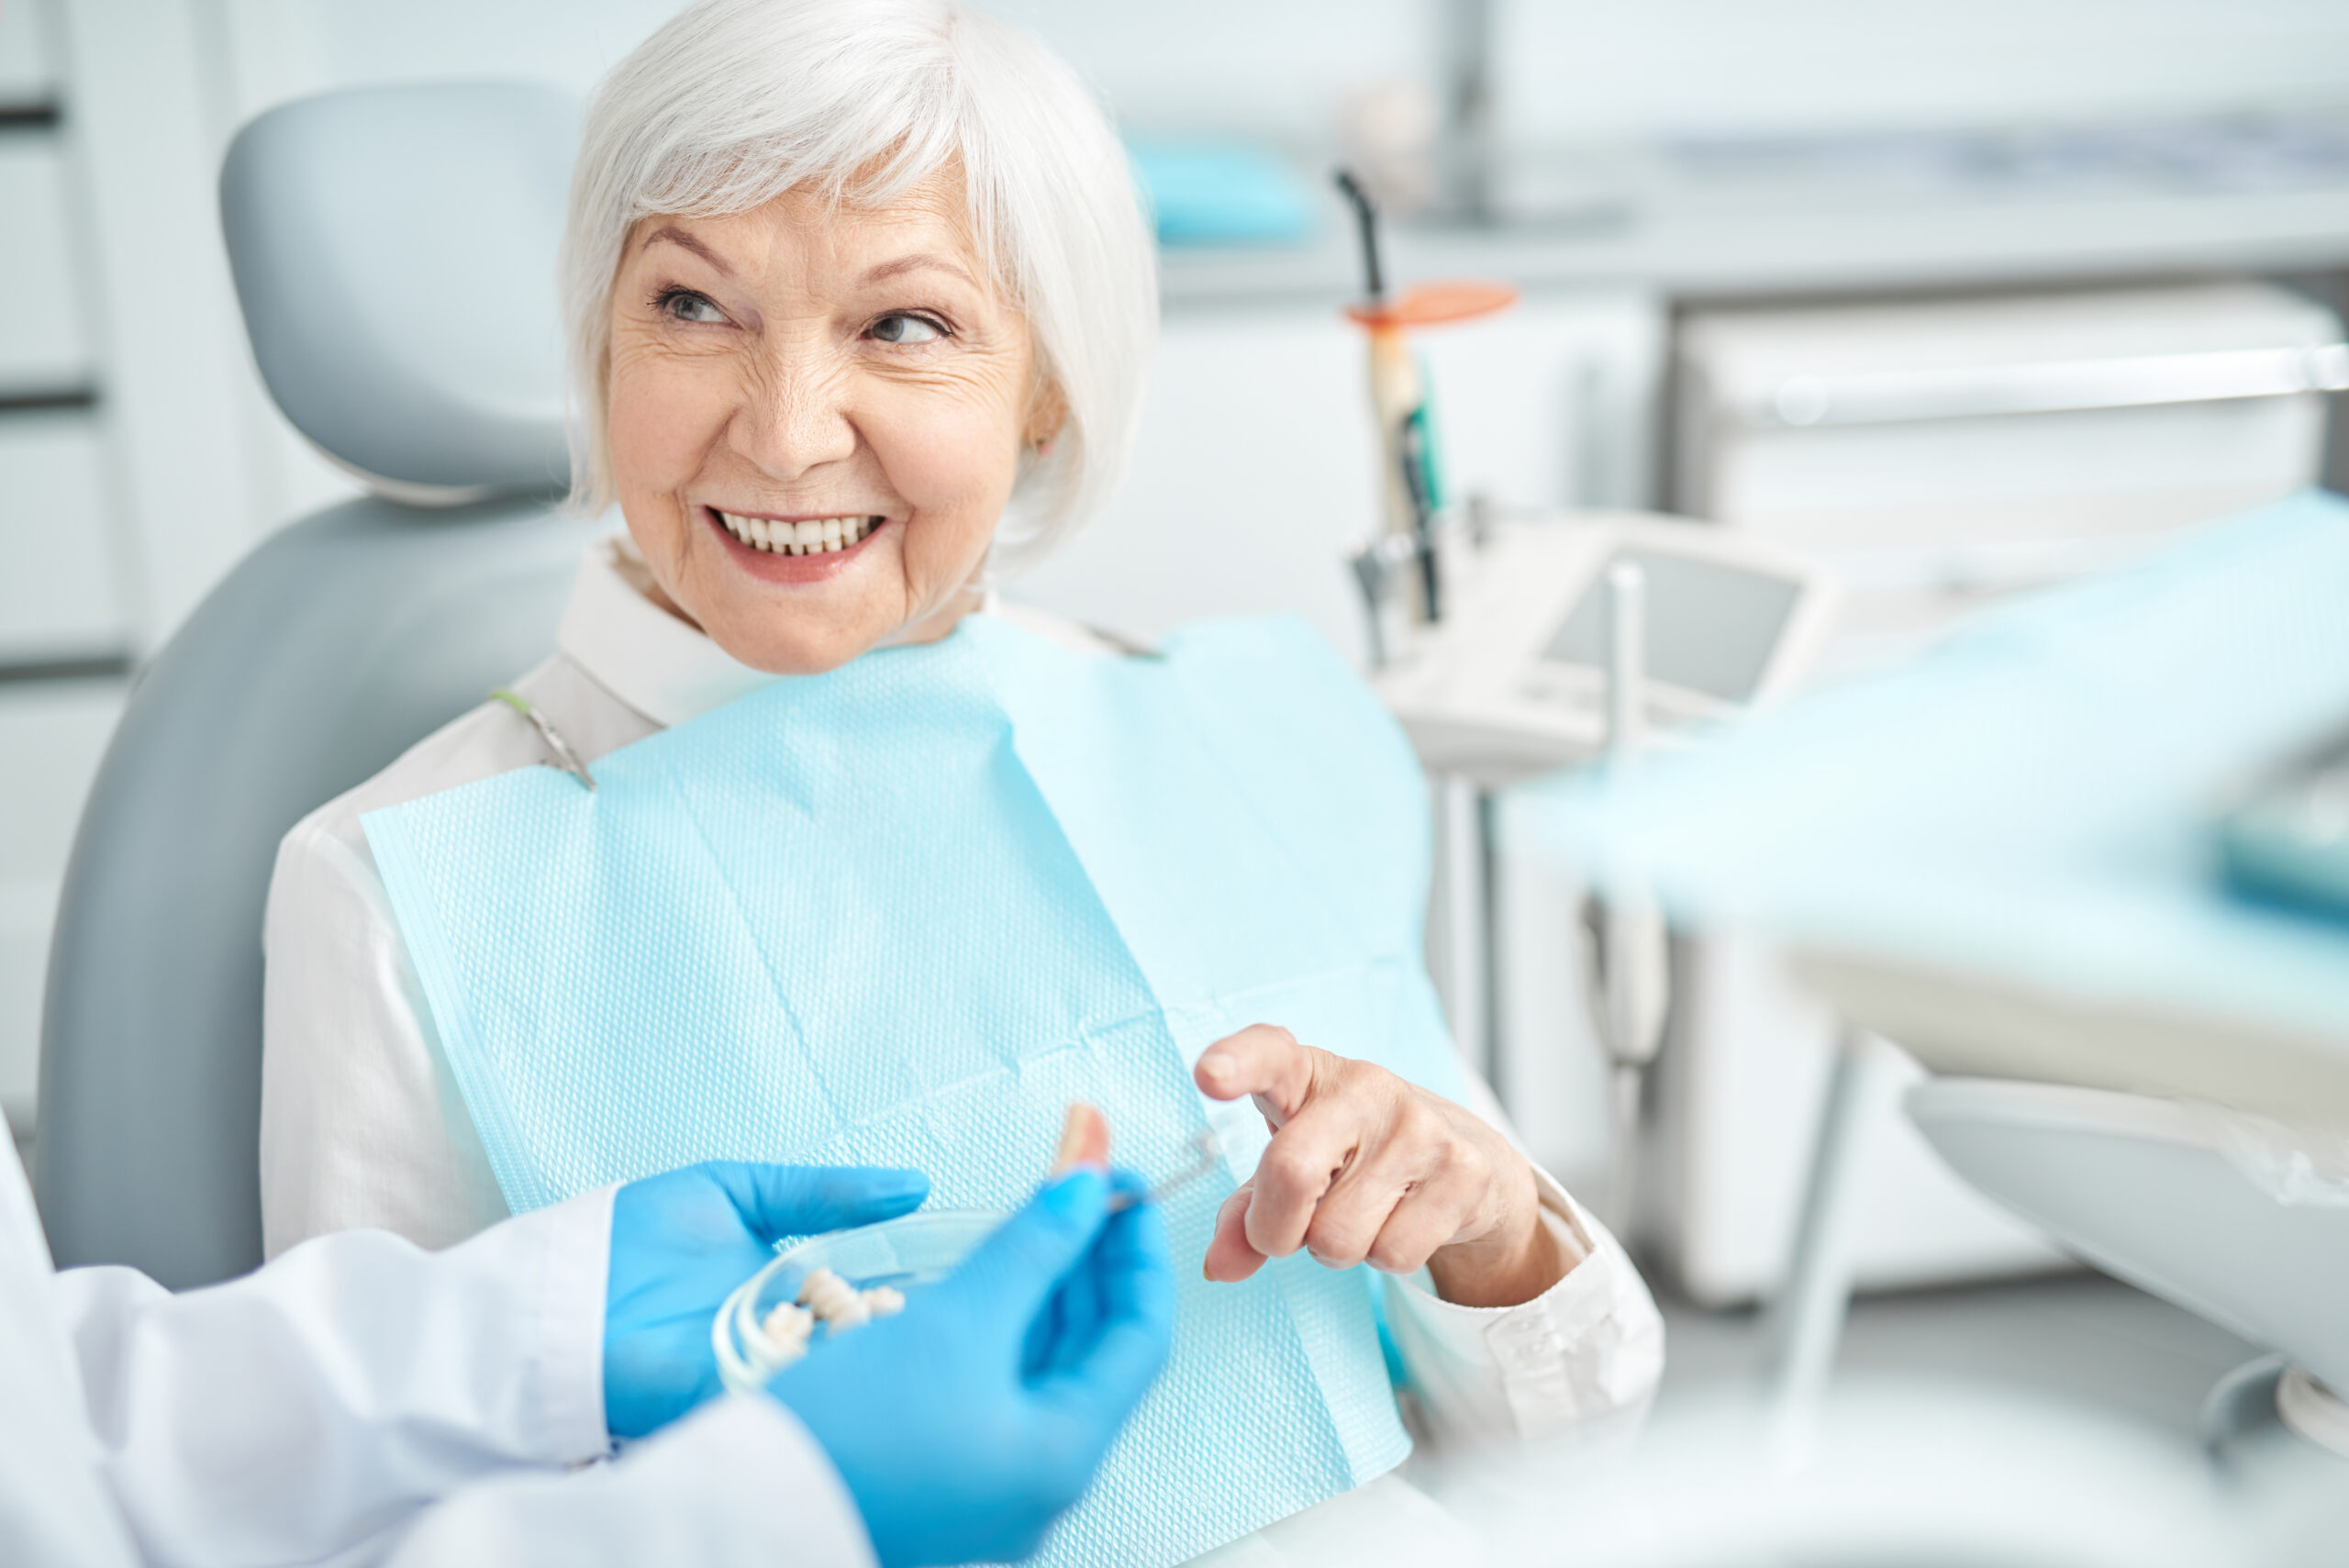 Smiling elderly woman looking at her doctor stock photo problems